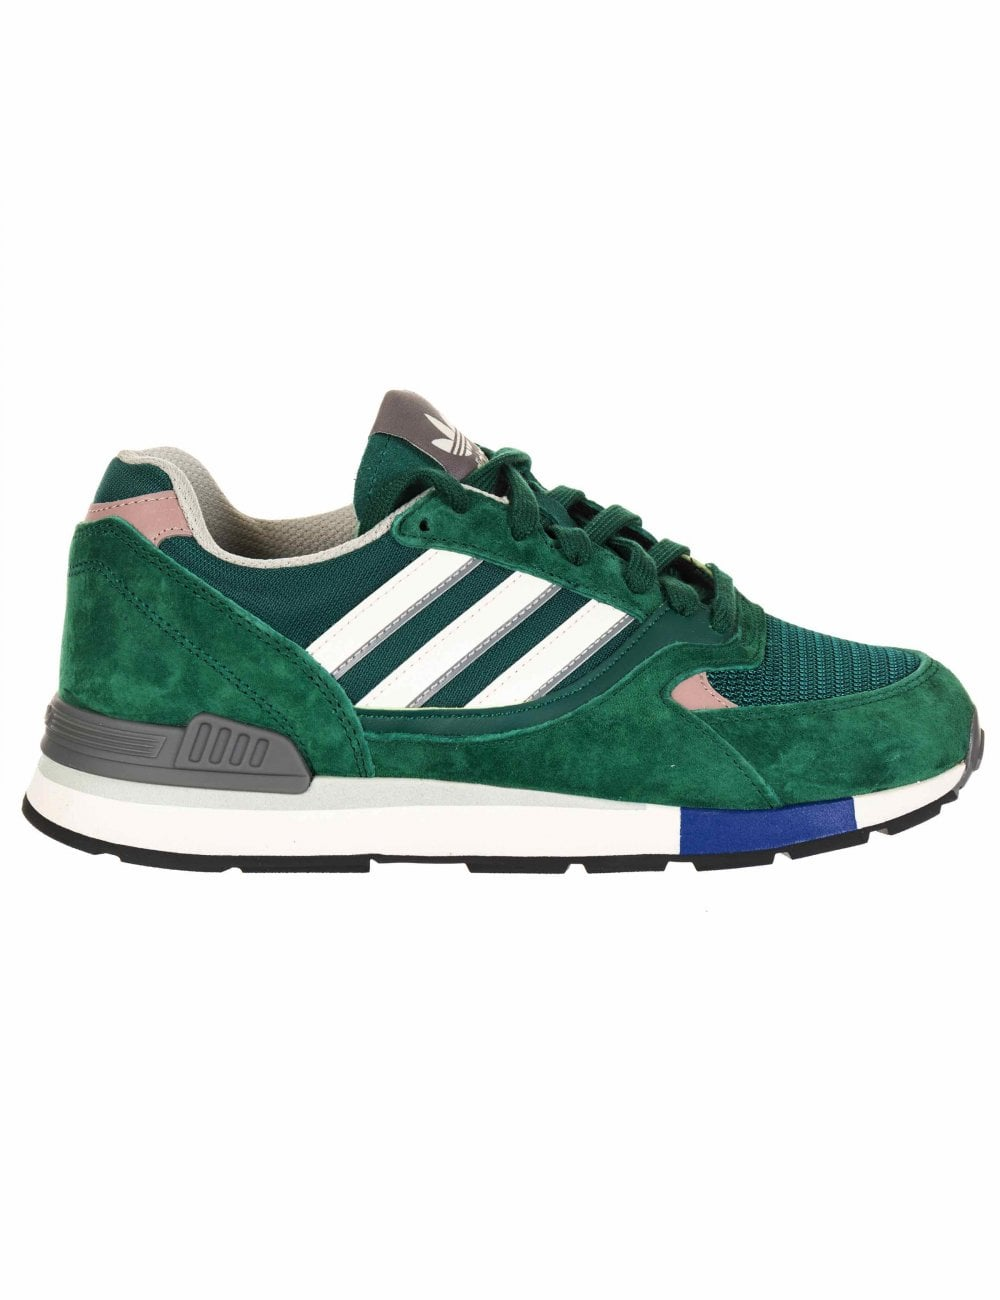 adidas quesence trainers - 65% remise